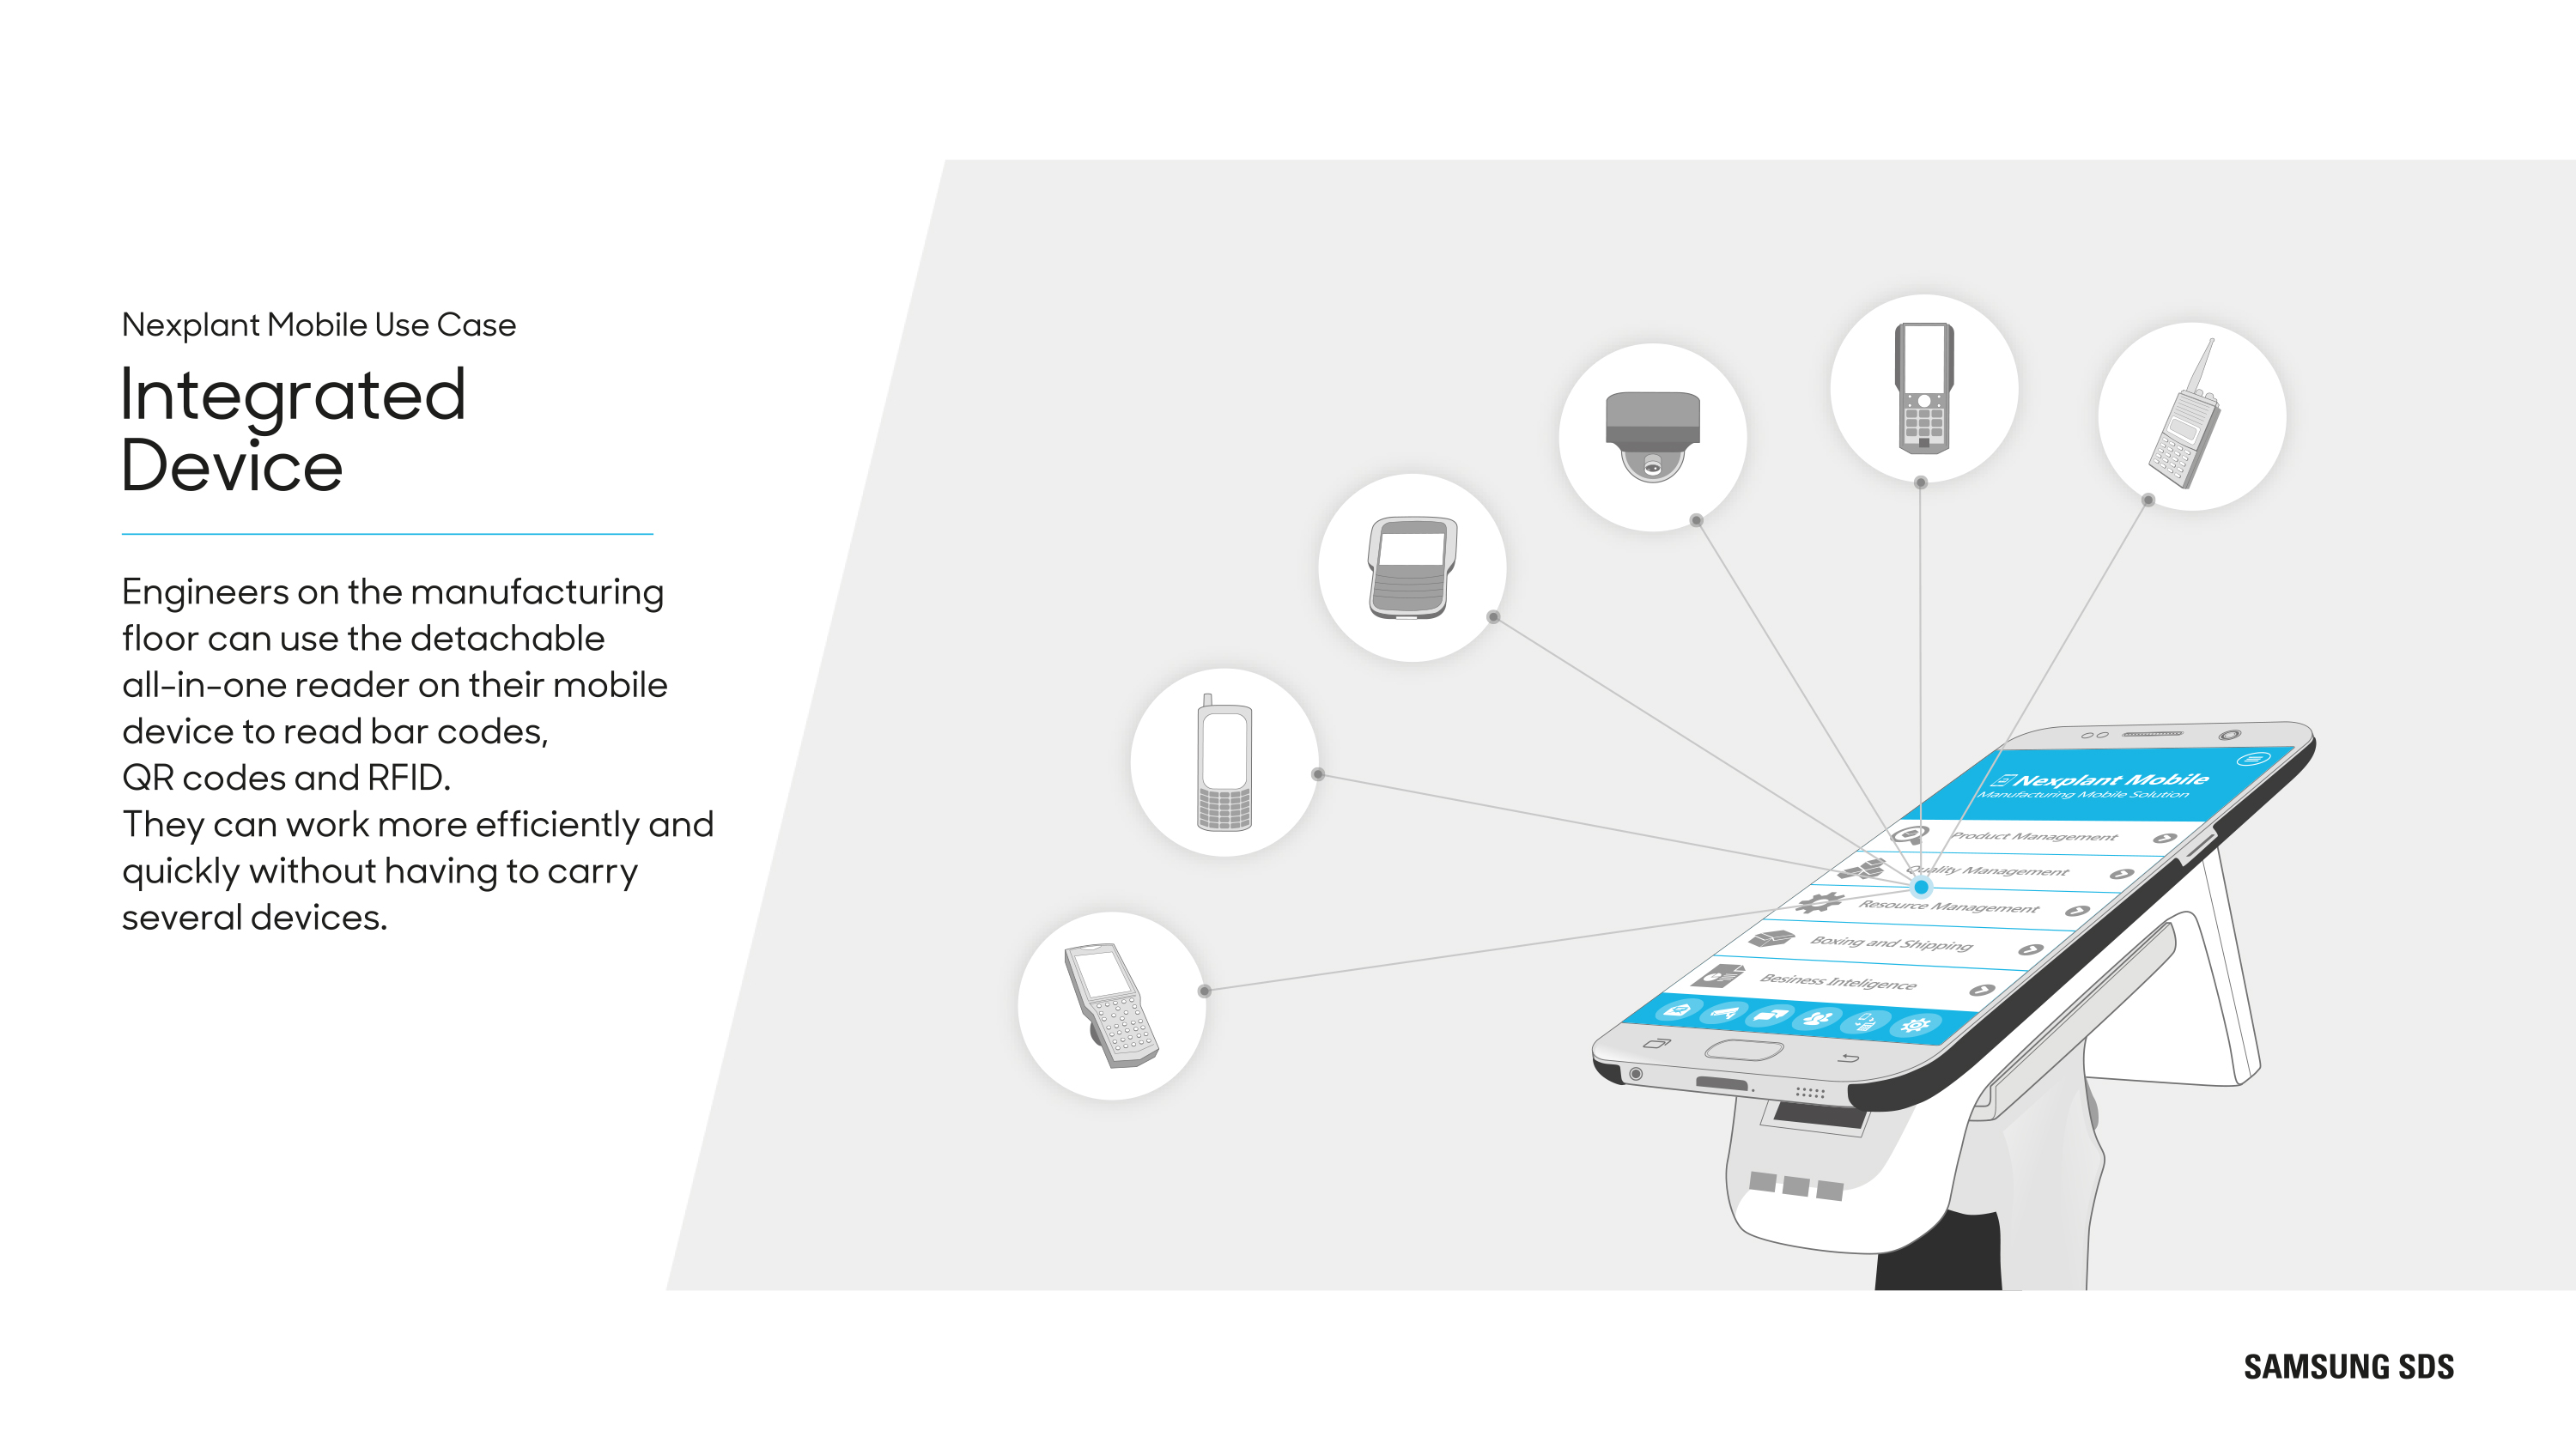 Integrated Device Engineers on the manufacturing floor can use the detachable all-in-one reader on their mobile device to read bar codes, QR codes and RFID. They can work more efficiently and quickly without having to carry several devices.